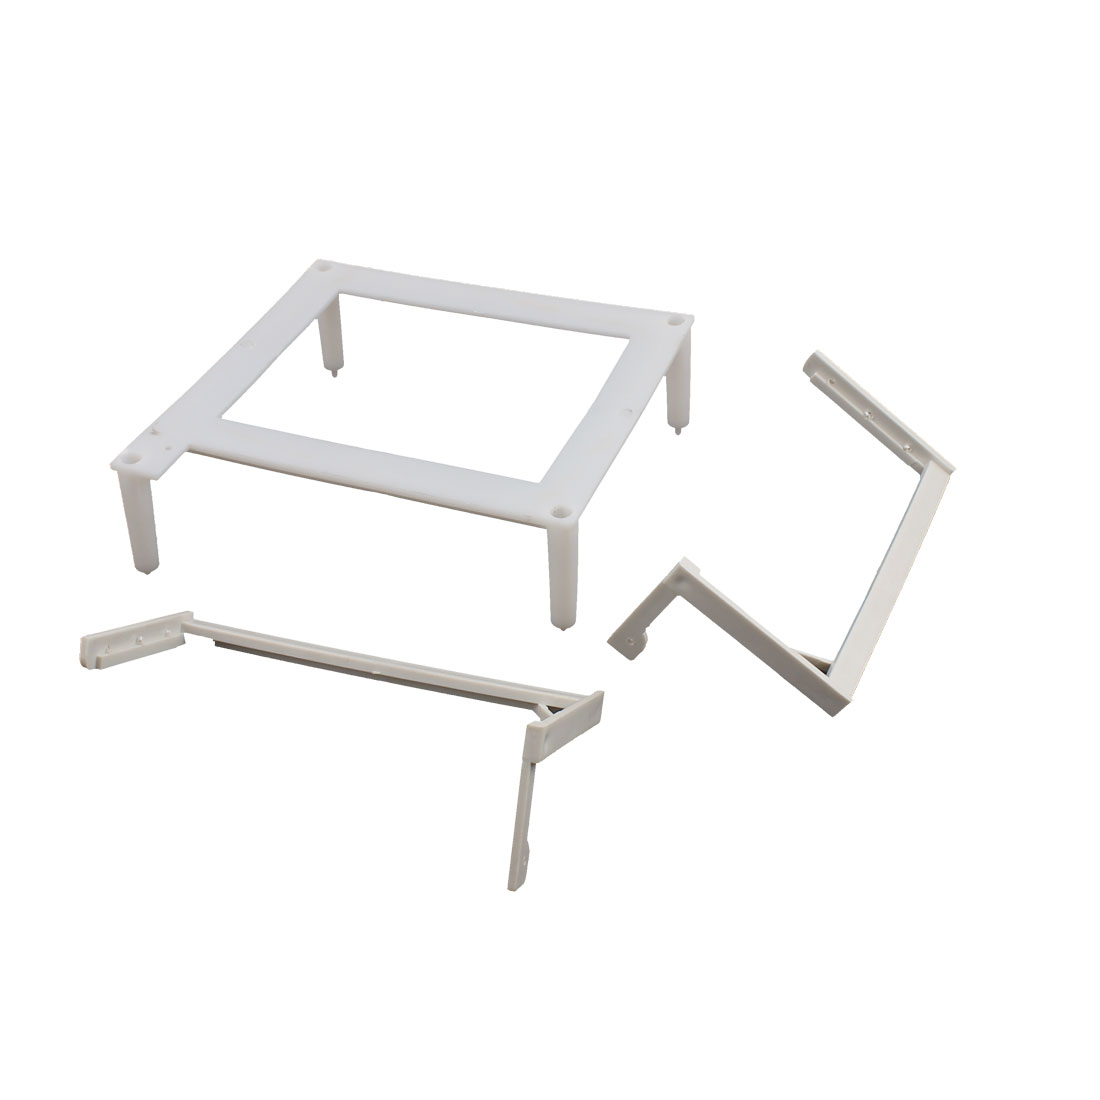 5CM Height Spacer Frame for PC Mother Board w 2 Pcs L Shape Spacer w Video Card Braket